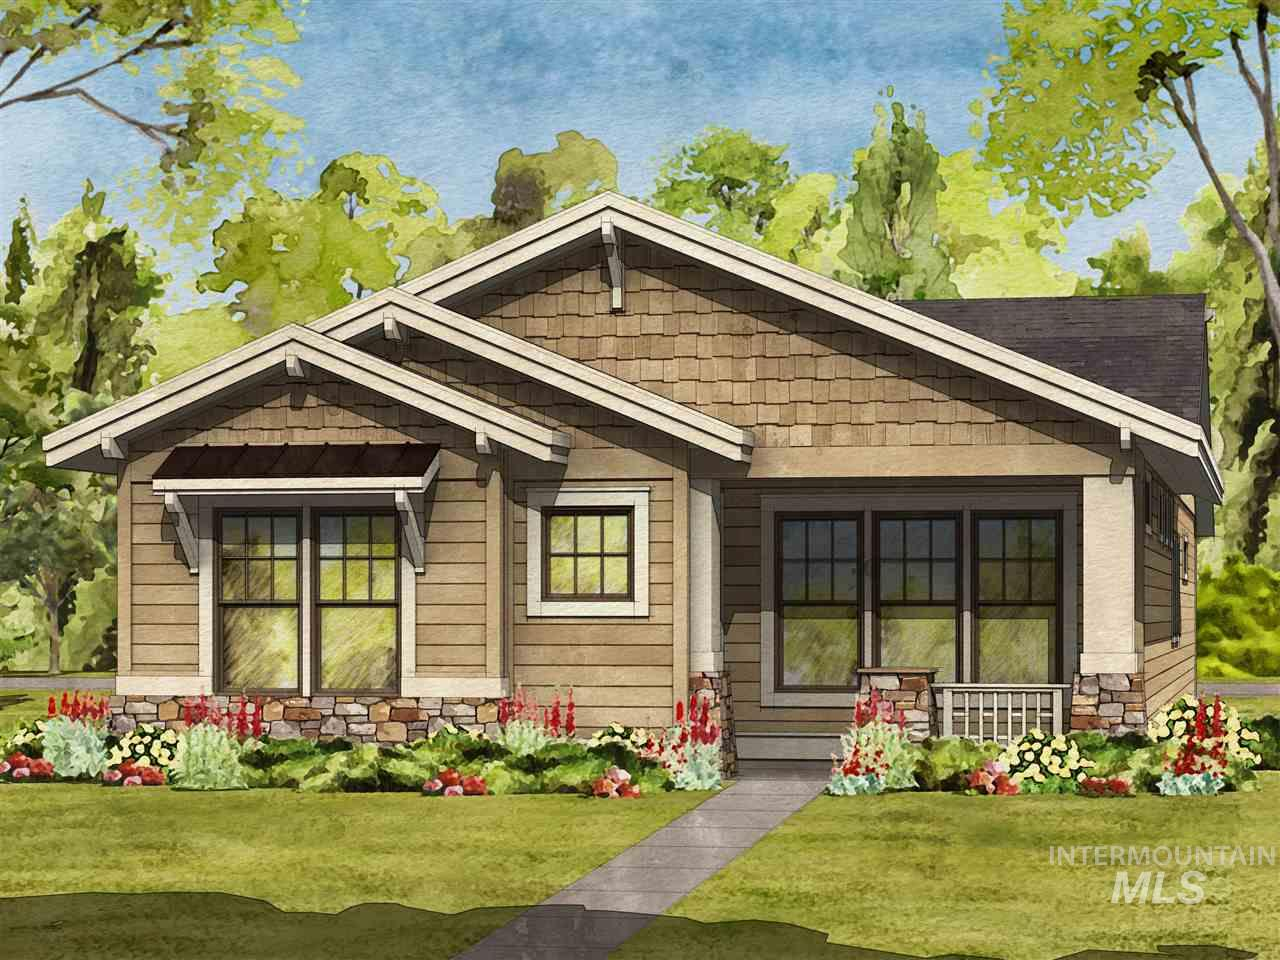 The Minnie Belle by Brighton Homes. Located in Cadence 55+ Community. Efficiently designed floor plan with an open concept makes this home perfect for entertaining.  Relax in the beautiful master suite with large walk-in closet. The beautiful kitchen features custom cabinets, walk-in pantry, Bosch stainless steel appliances and Kohler throughout, a Brighton standard! 100% Energy Star Certified. Interior specs shown are subject to change prior to completion date.